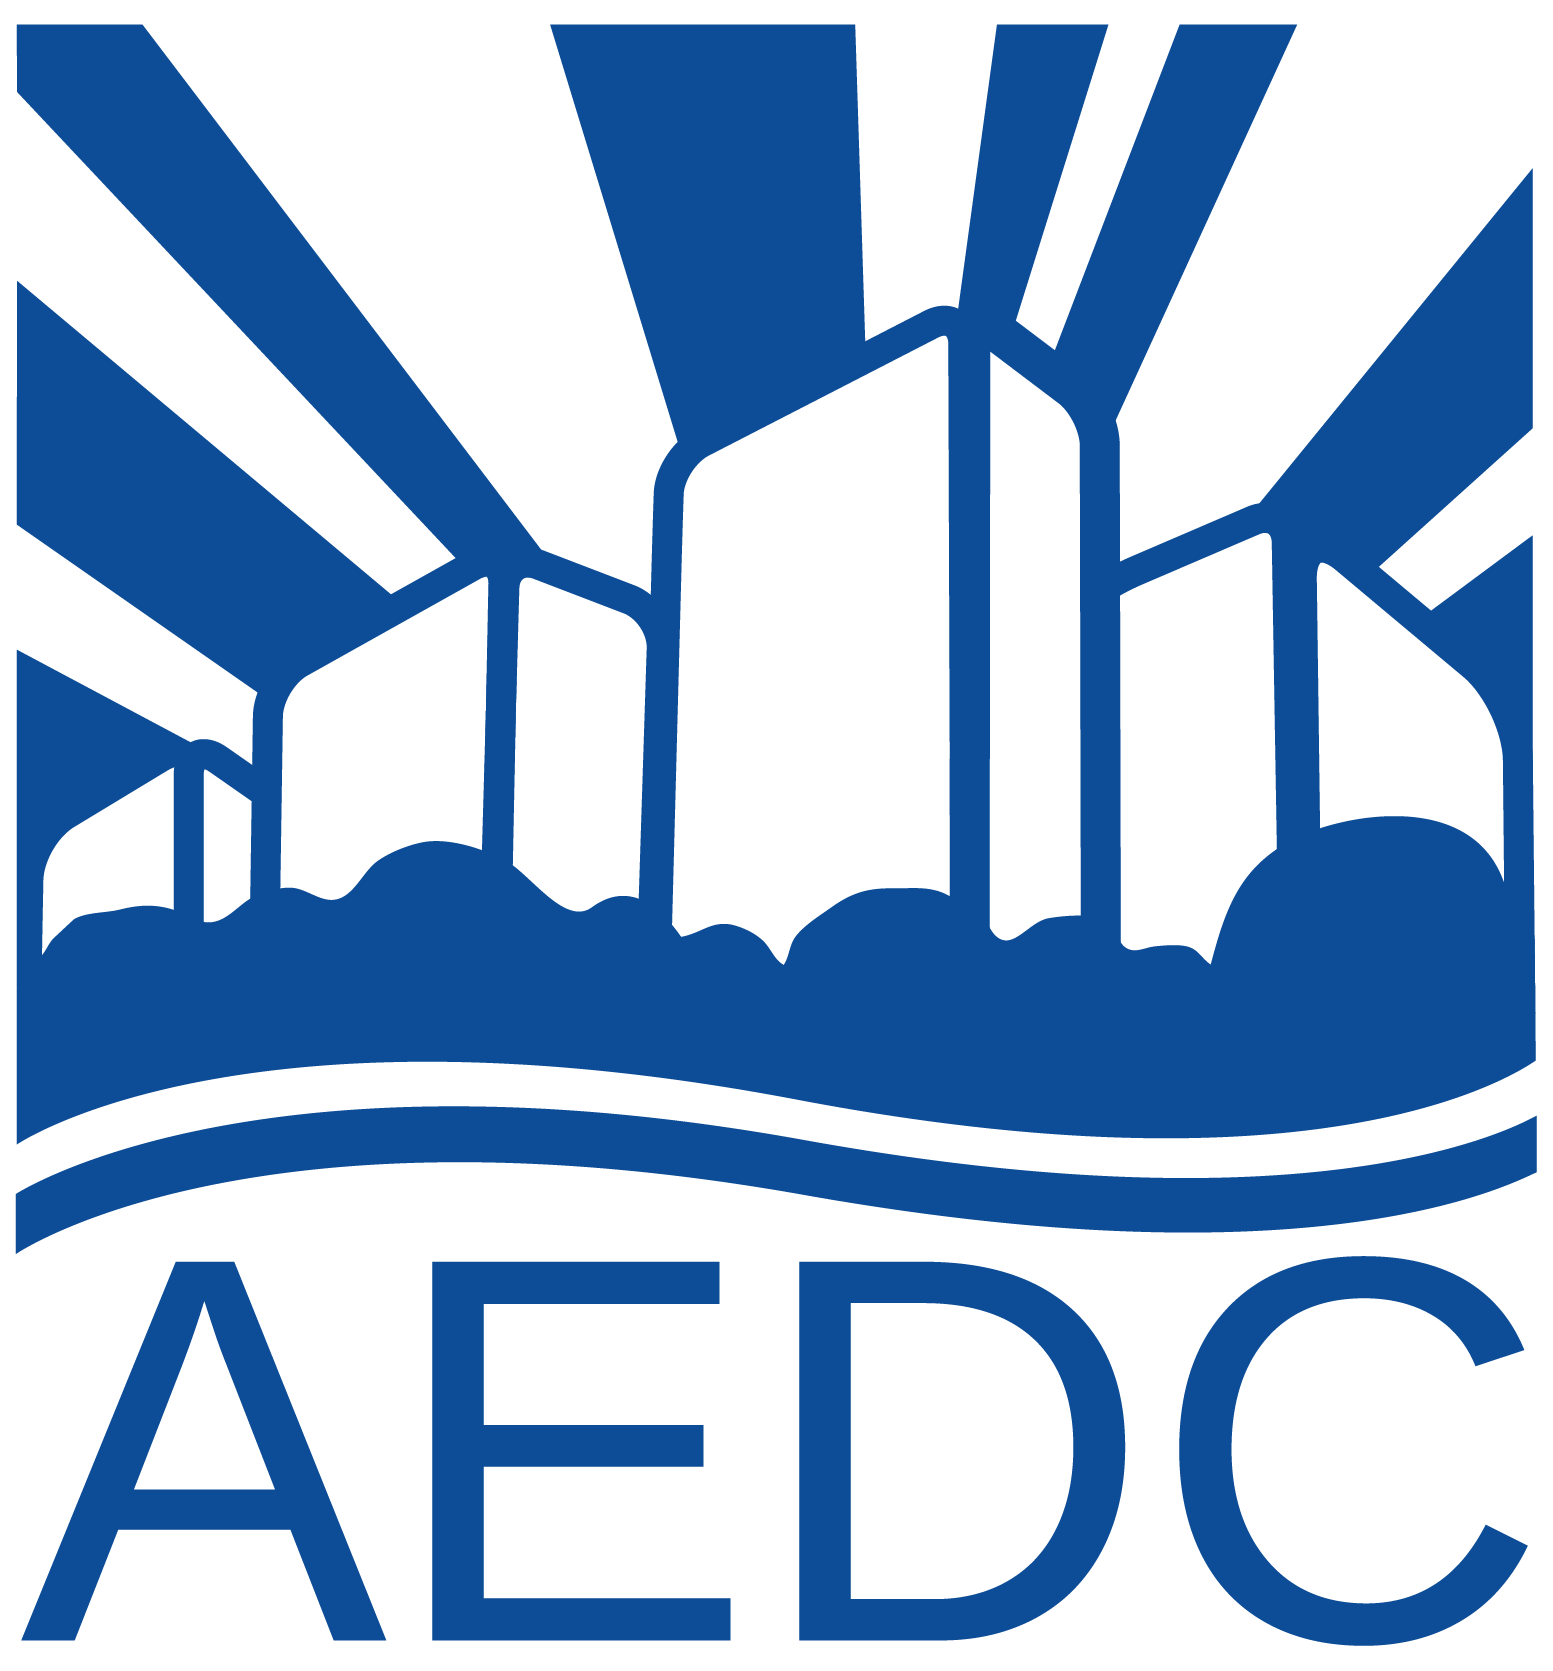 AEDC Division Logos_AEDC Logo.png